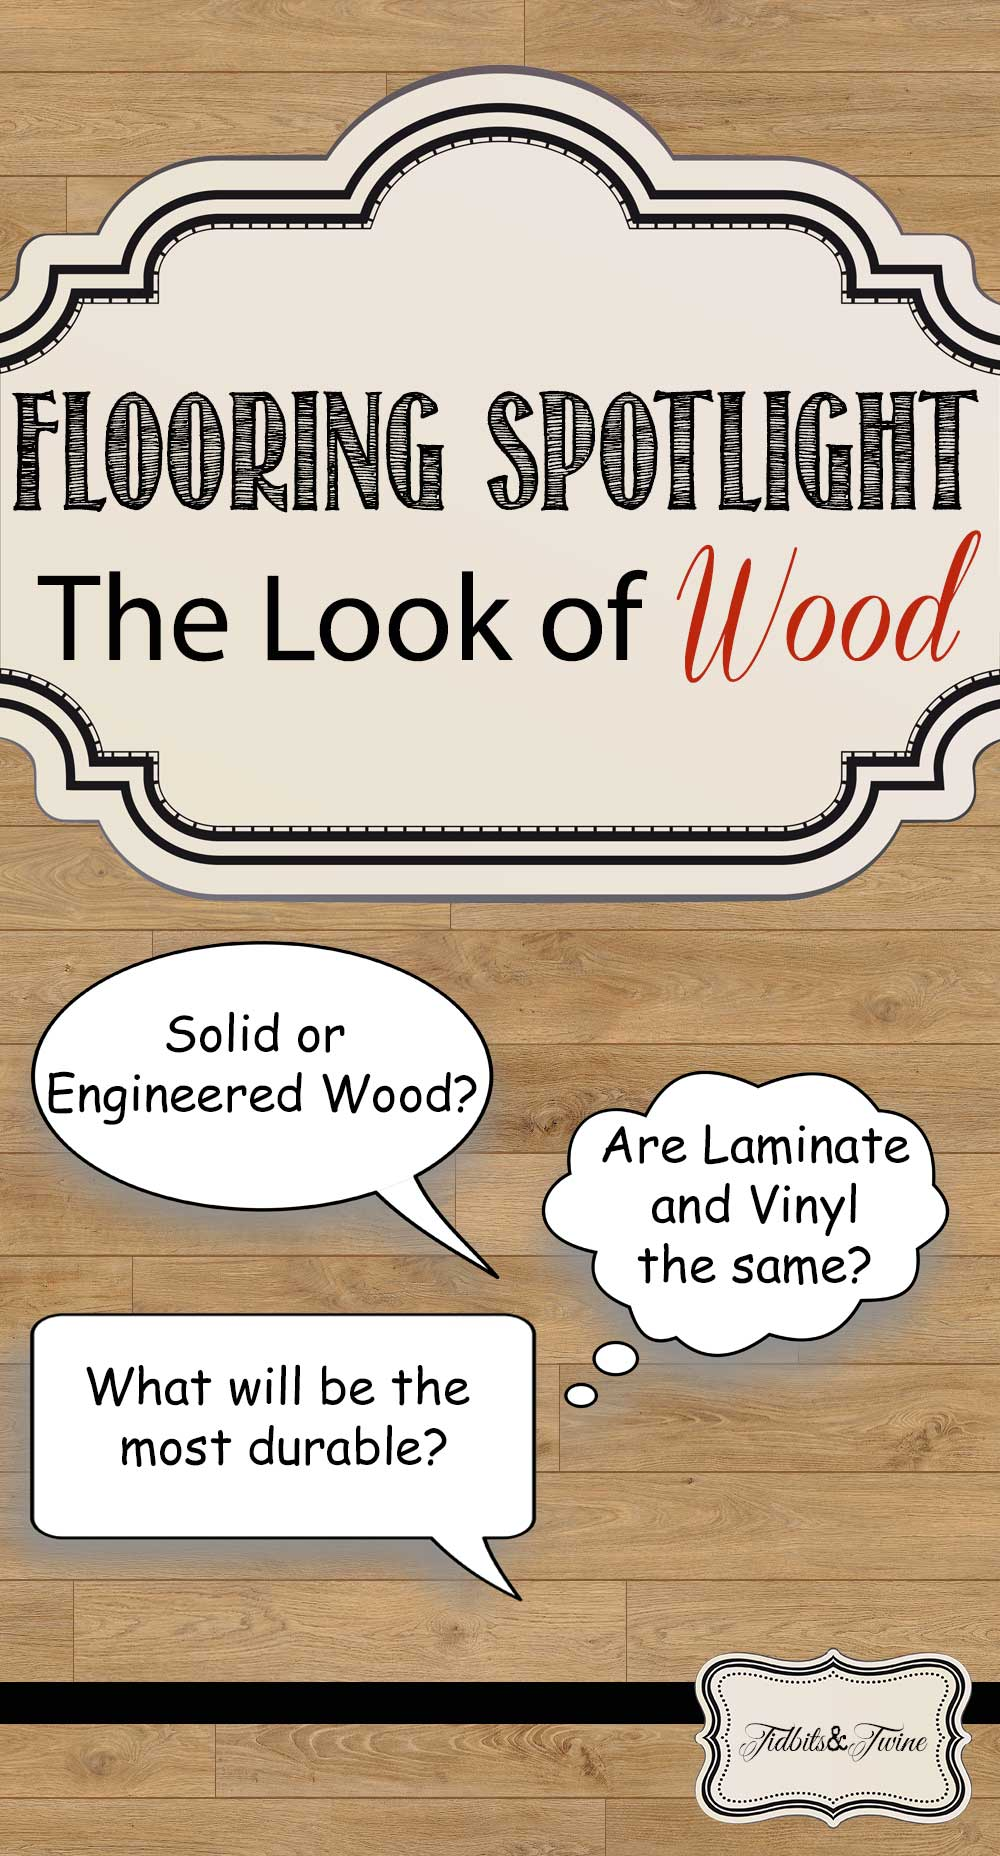 TIDBITS&TWINE---Flooring-Spotlight-Options-to-Get-the-Hardwood-Look